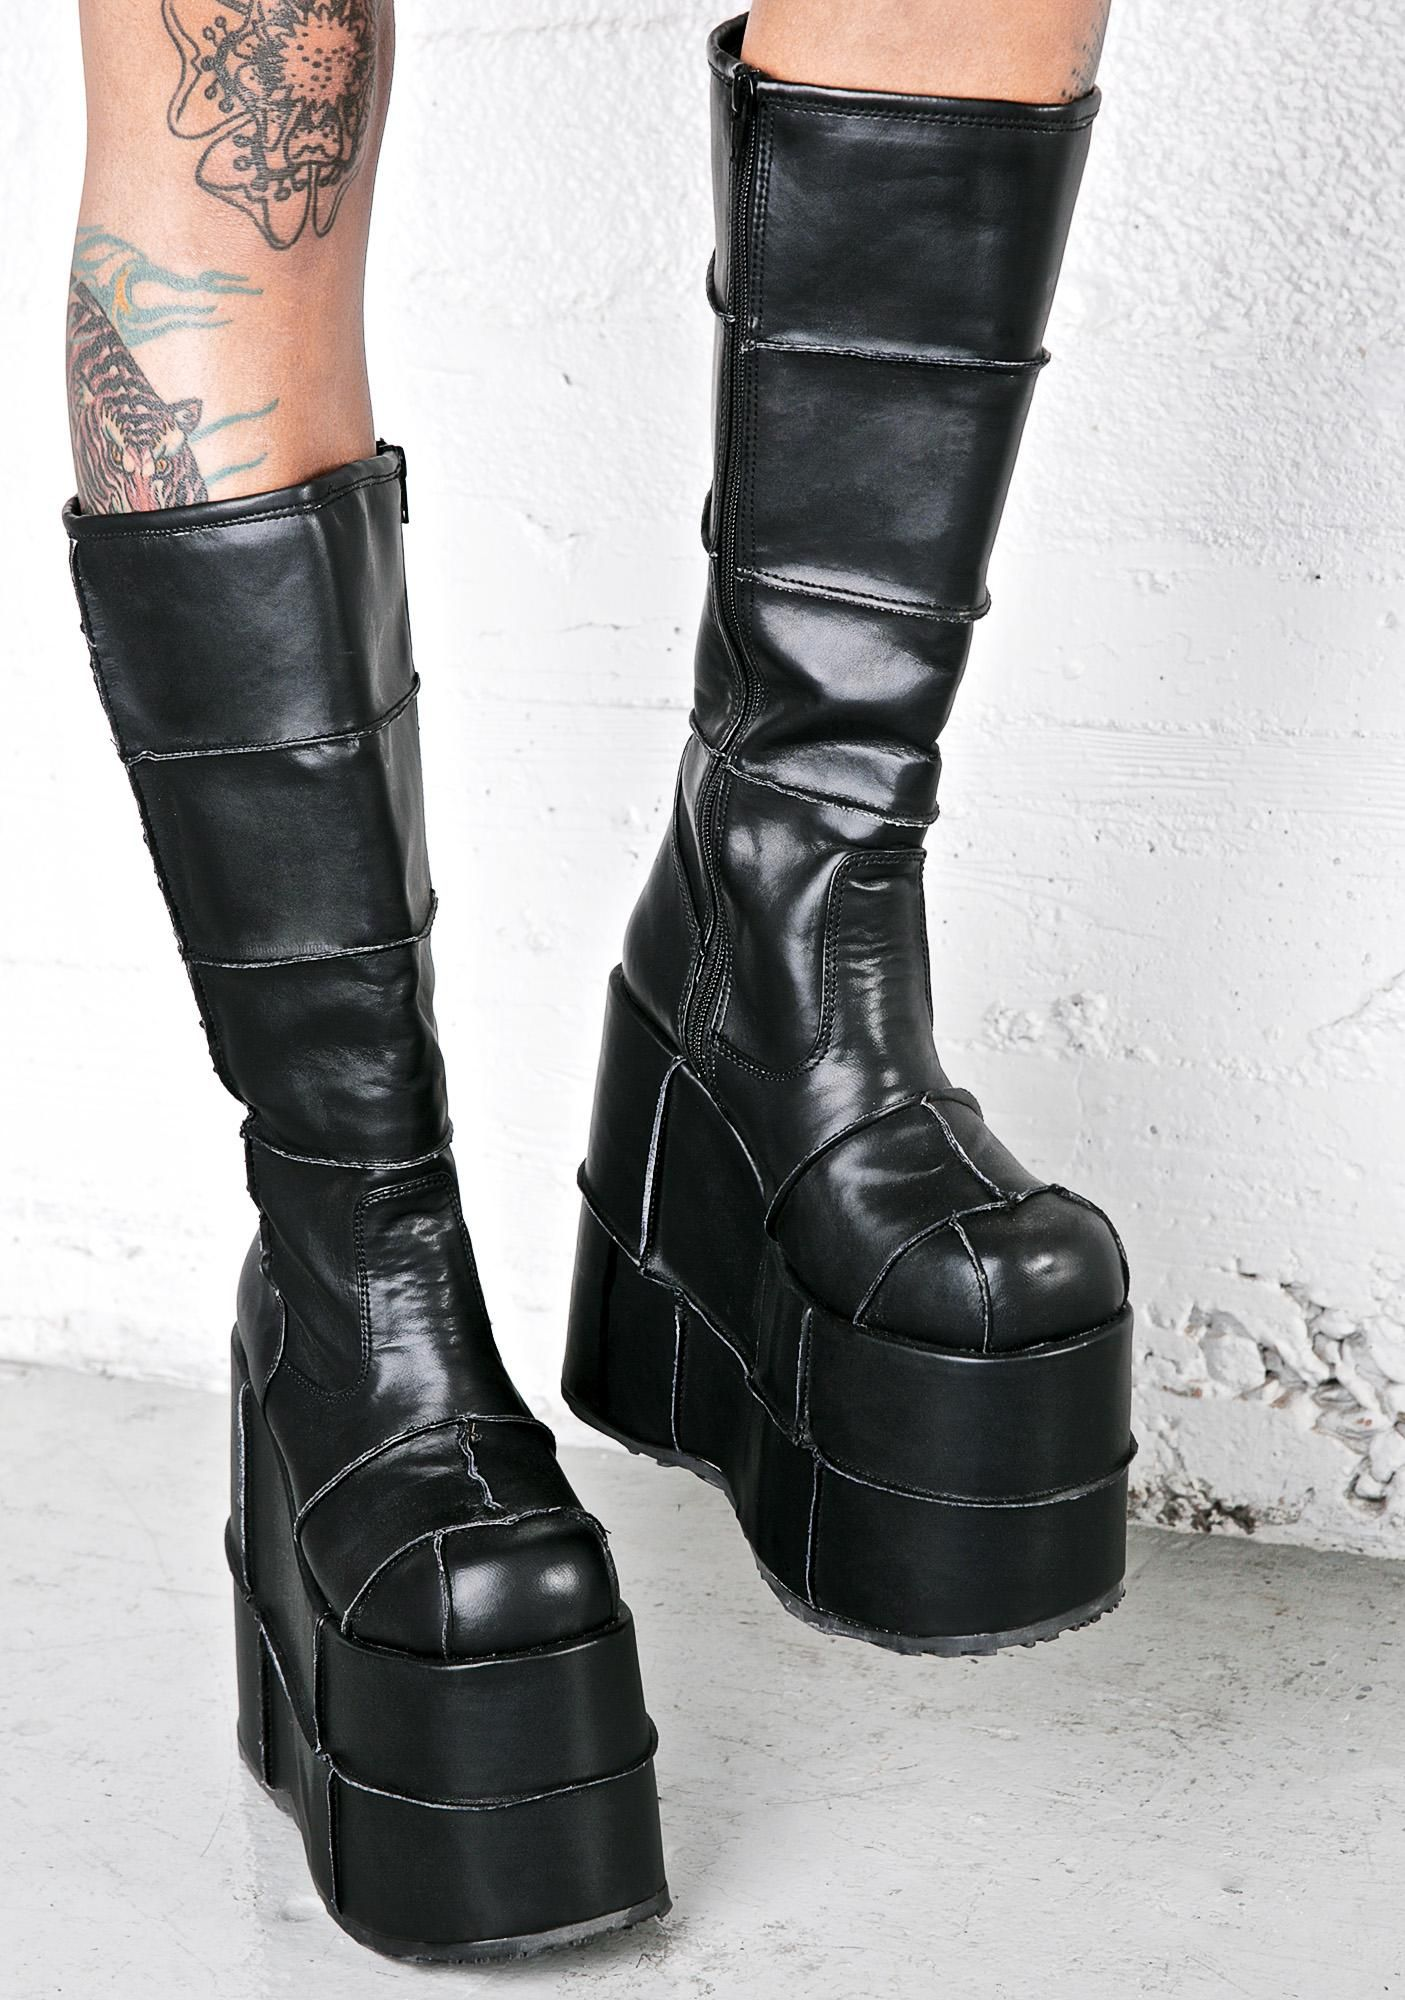 22e2643b39c4e Demonia Stack Patched Platform Boots have ya stacked all da way up. These  epic boots are badazz with their soft soft vegan leather construction and  patched ...